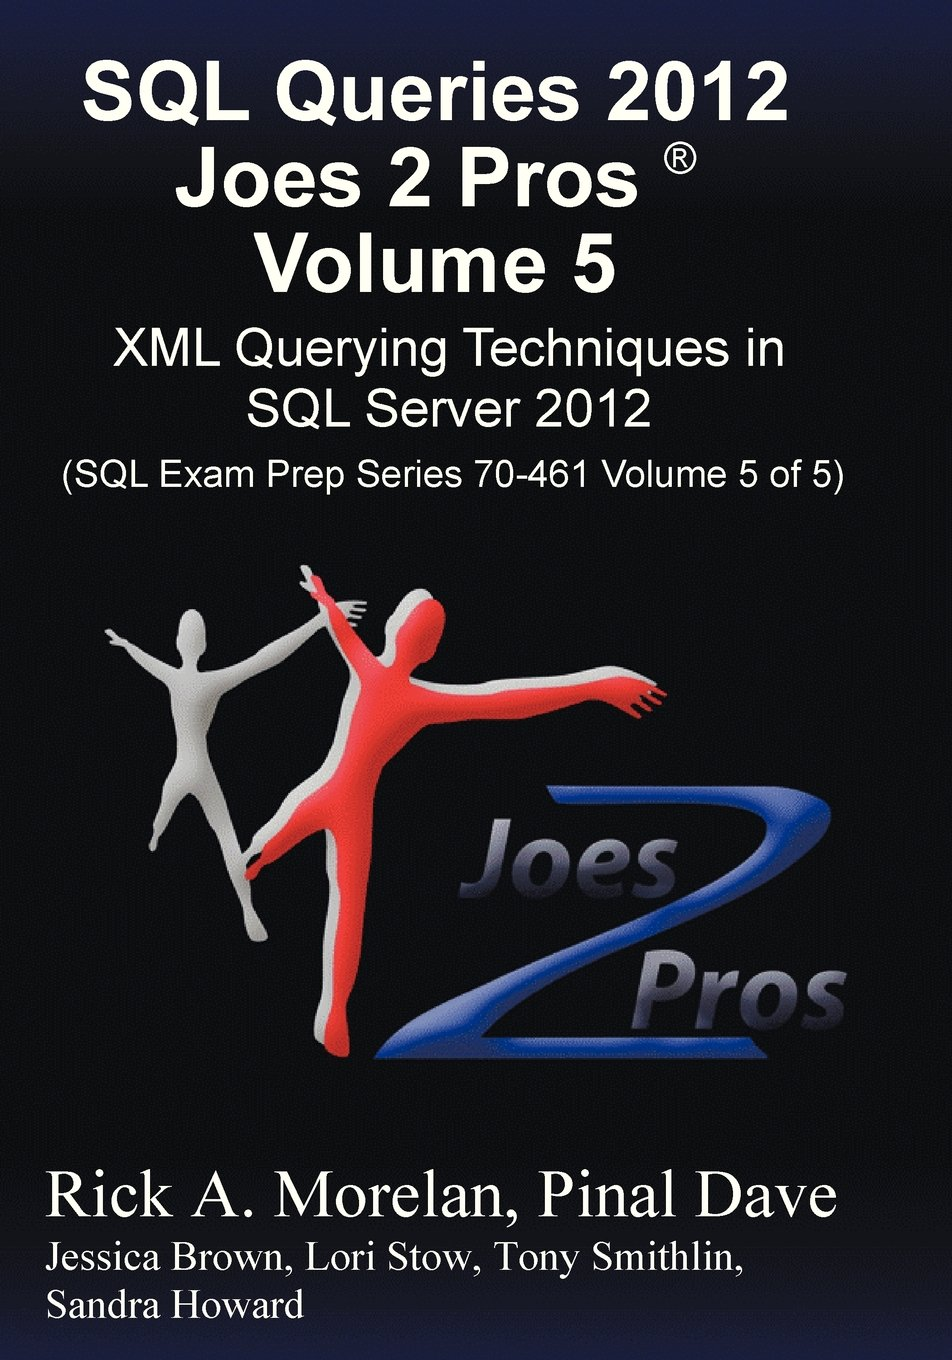 SQL Queries 2012 Joes Pros product image